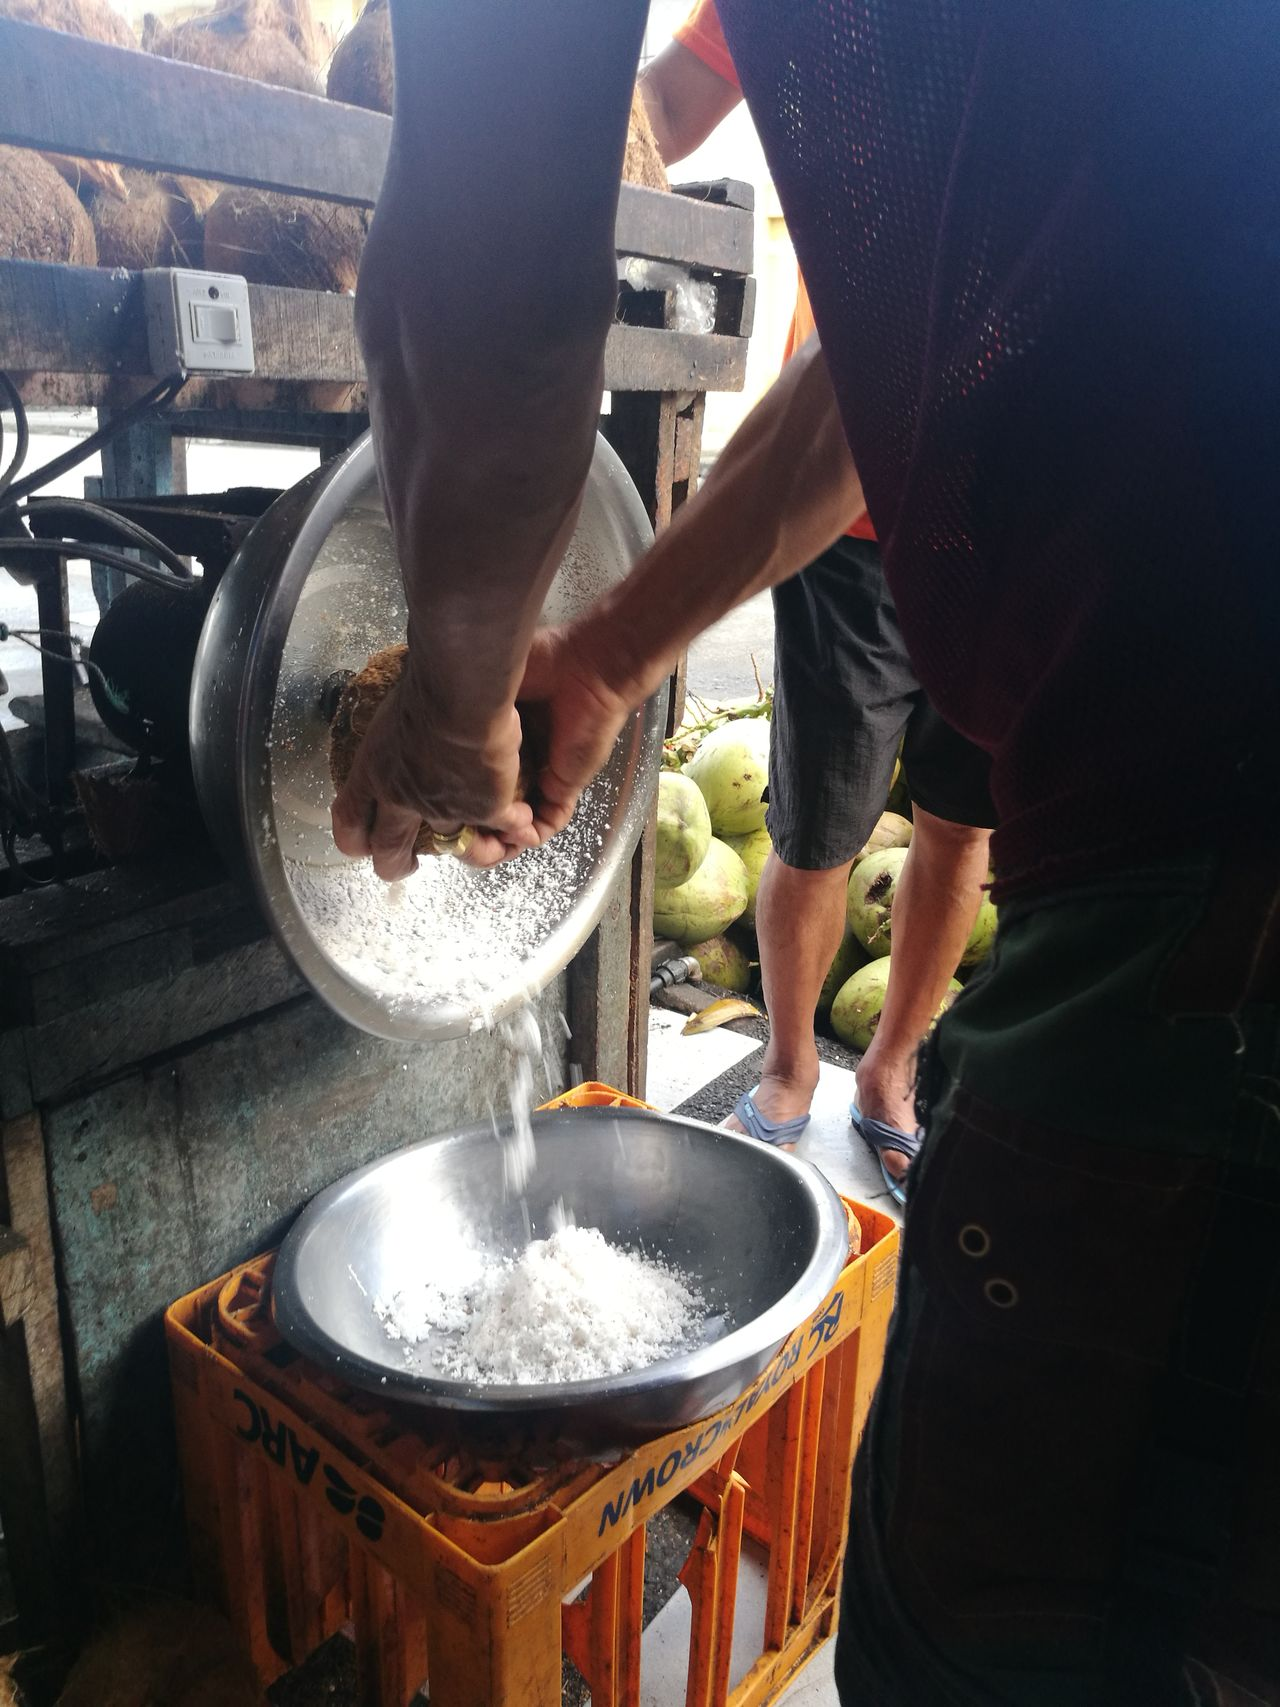 Shredded coconut meat. This man's daily grind. Foodphotography Food Preparation Ingredients Working EyeEmNewHere